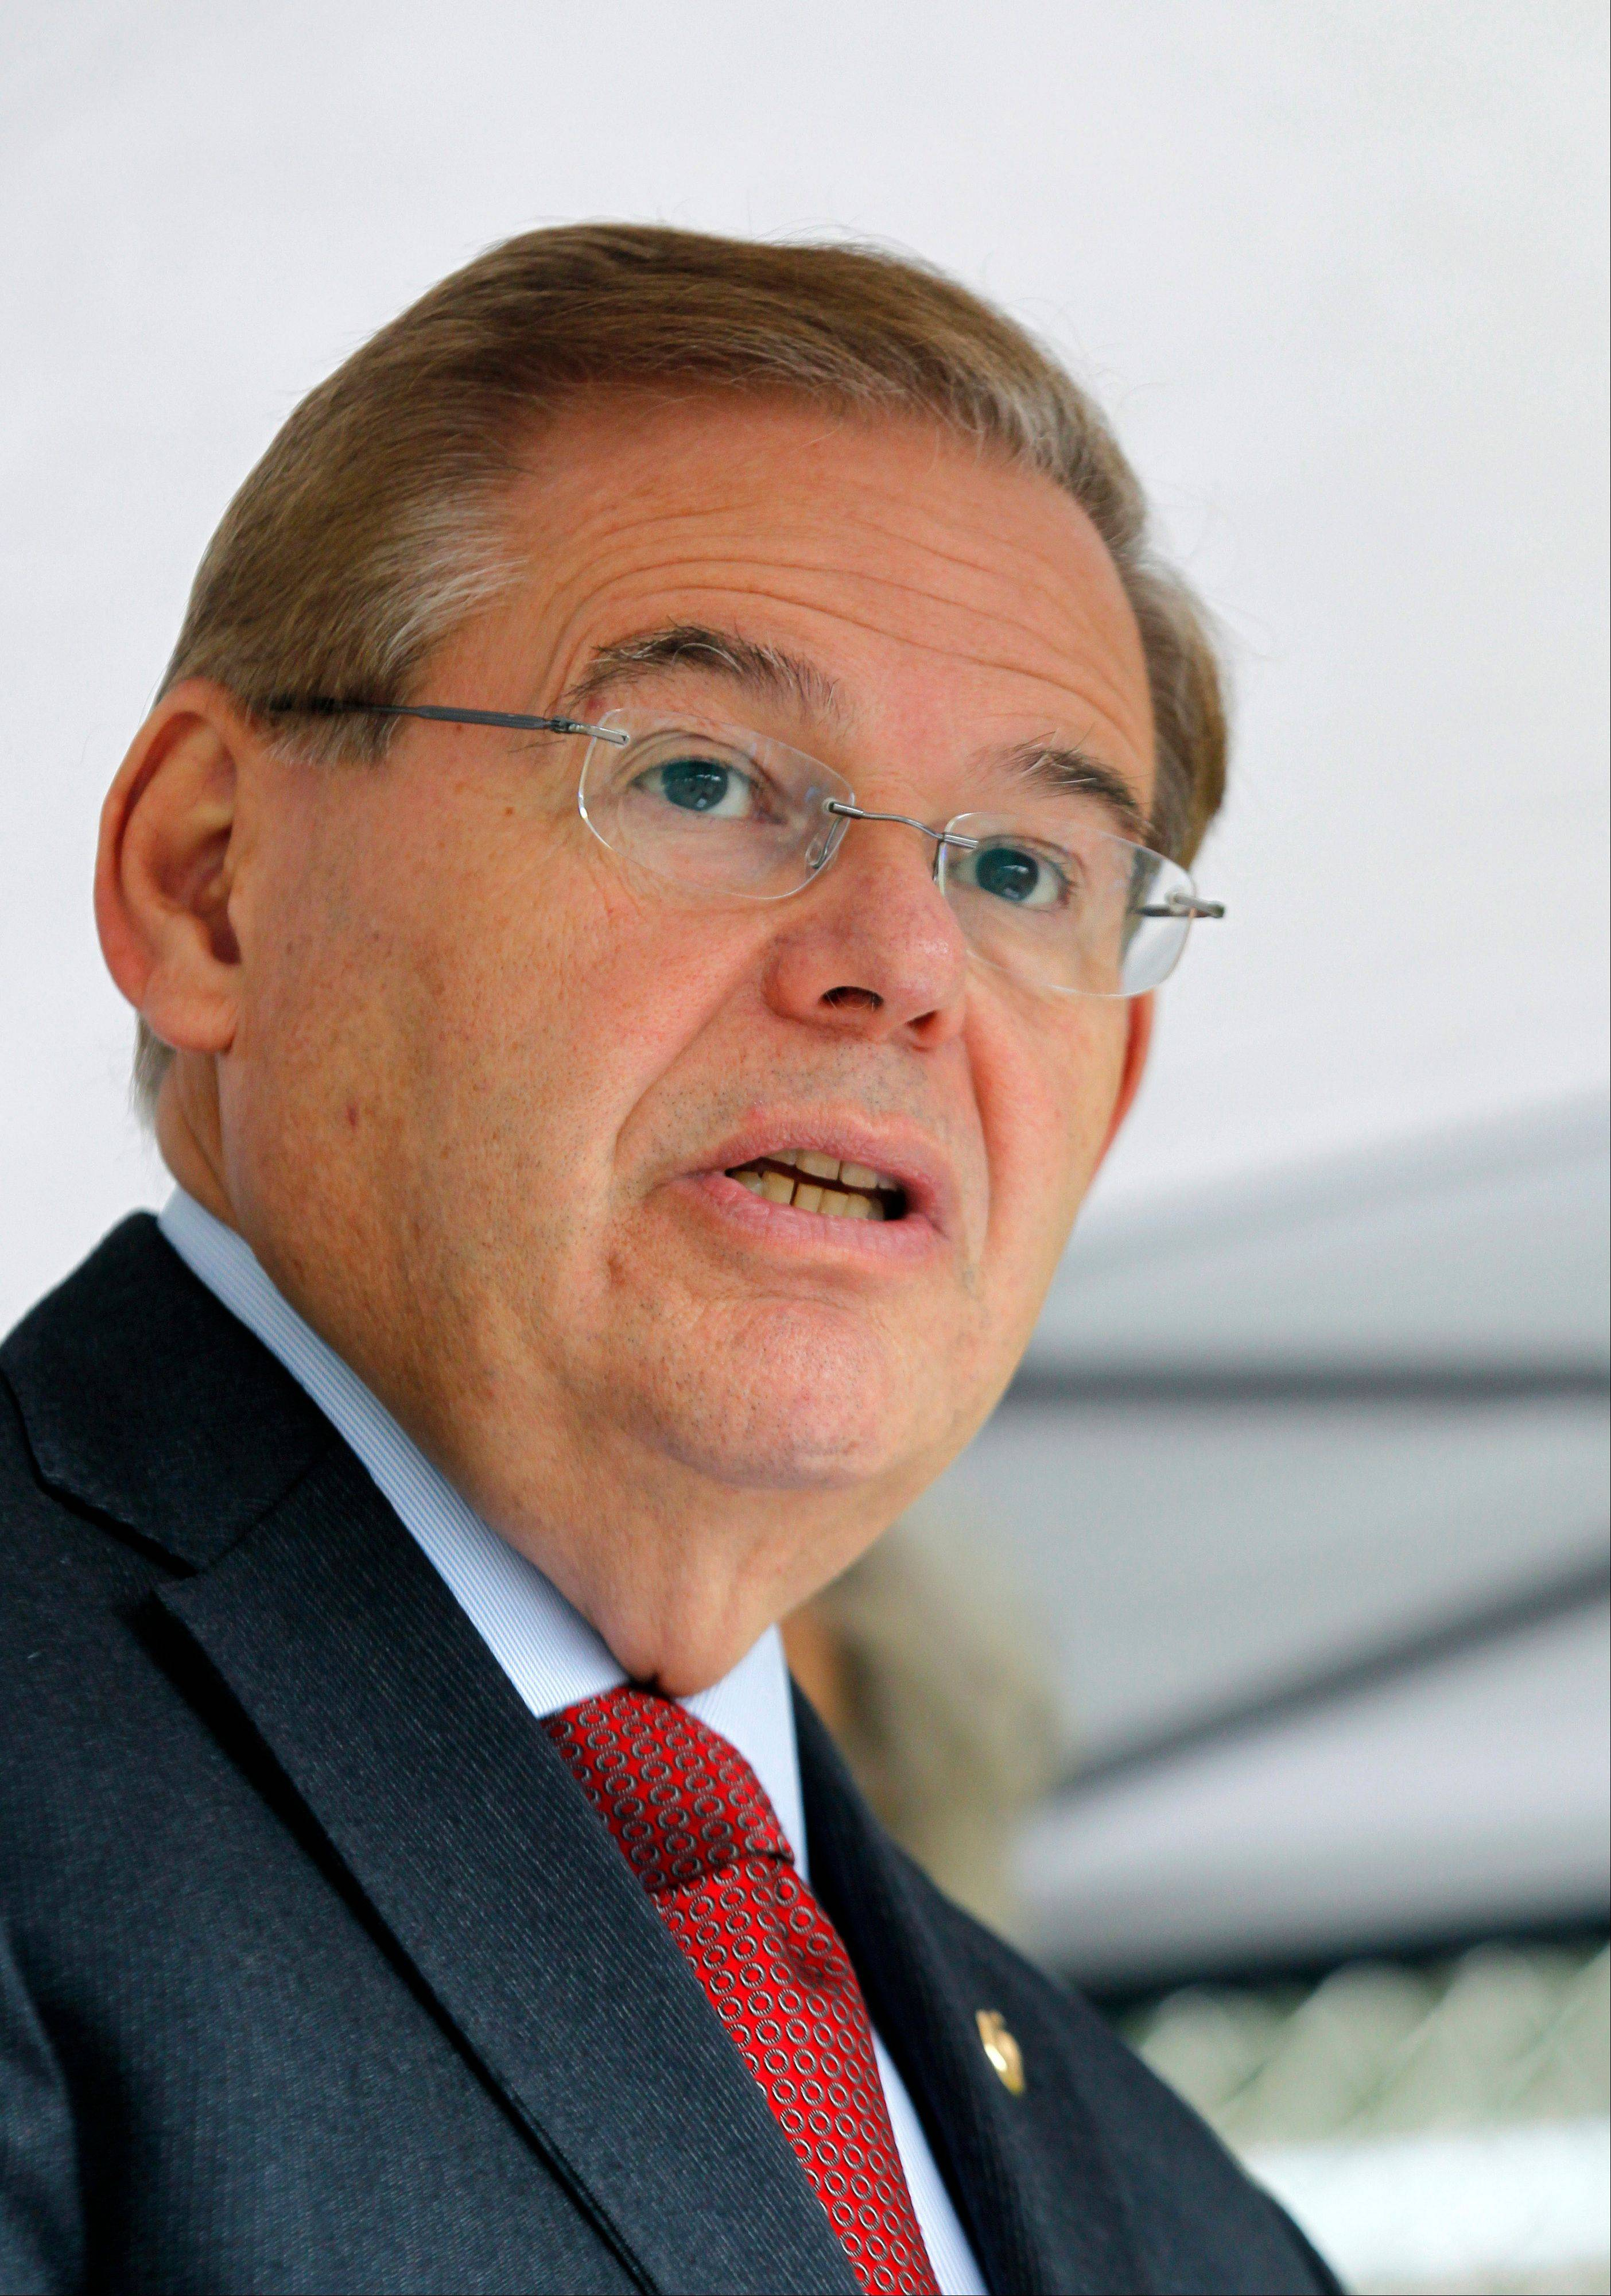 Sen. Robert Menendez, D-N.J. A harrowing nighttime flight over the African jungle and a wild search for a rebel leader helped forge a relationship between Menendez and Republican Rep. Ed Royce, two men standing at the forefront of Congress' changing guard on foreign policy.